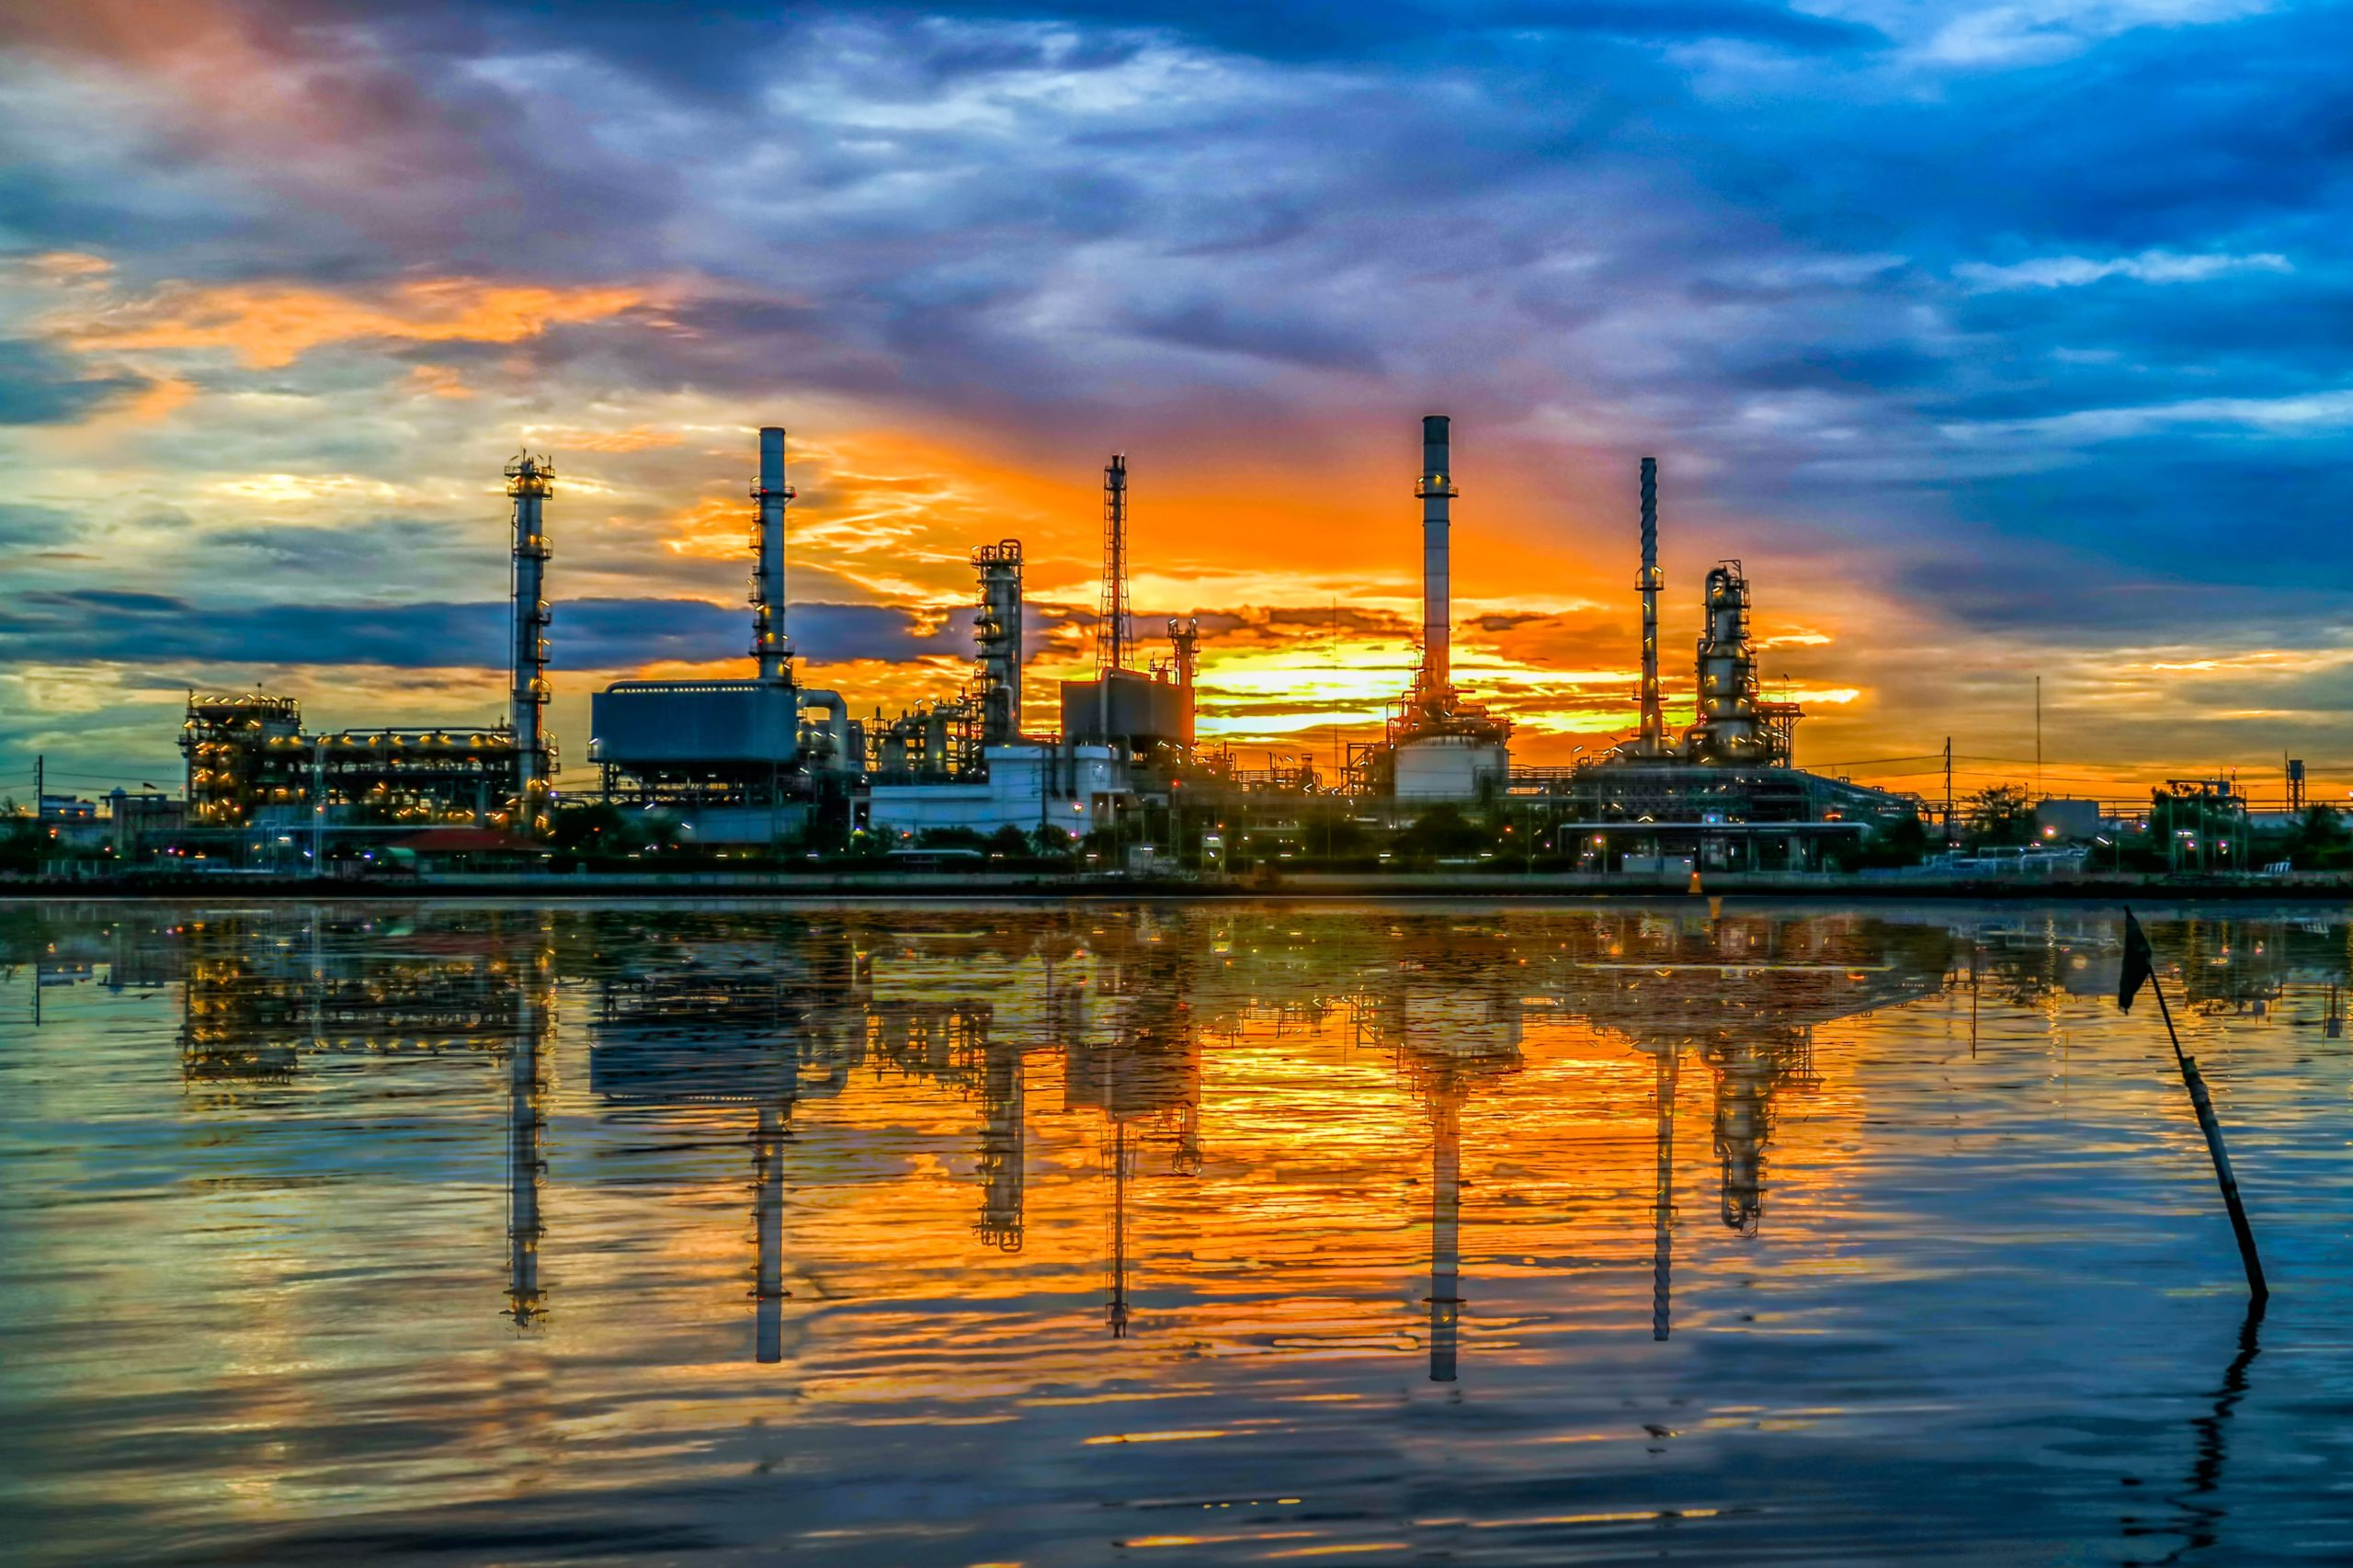 Insiders Apparently See Extraordinary Value In This Energy Stock